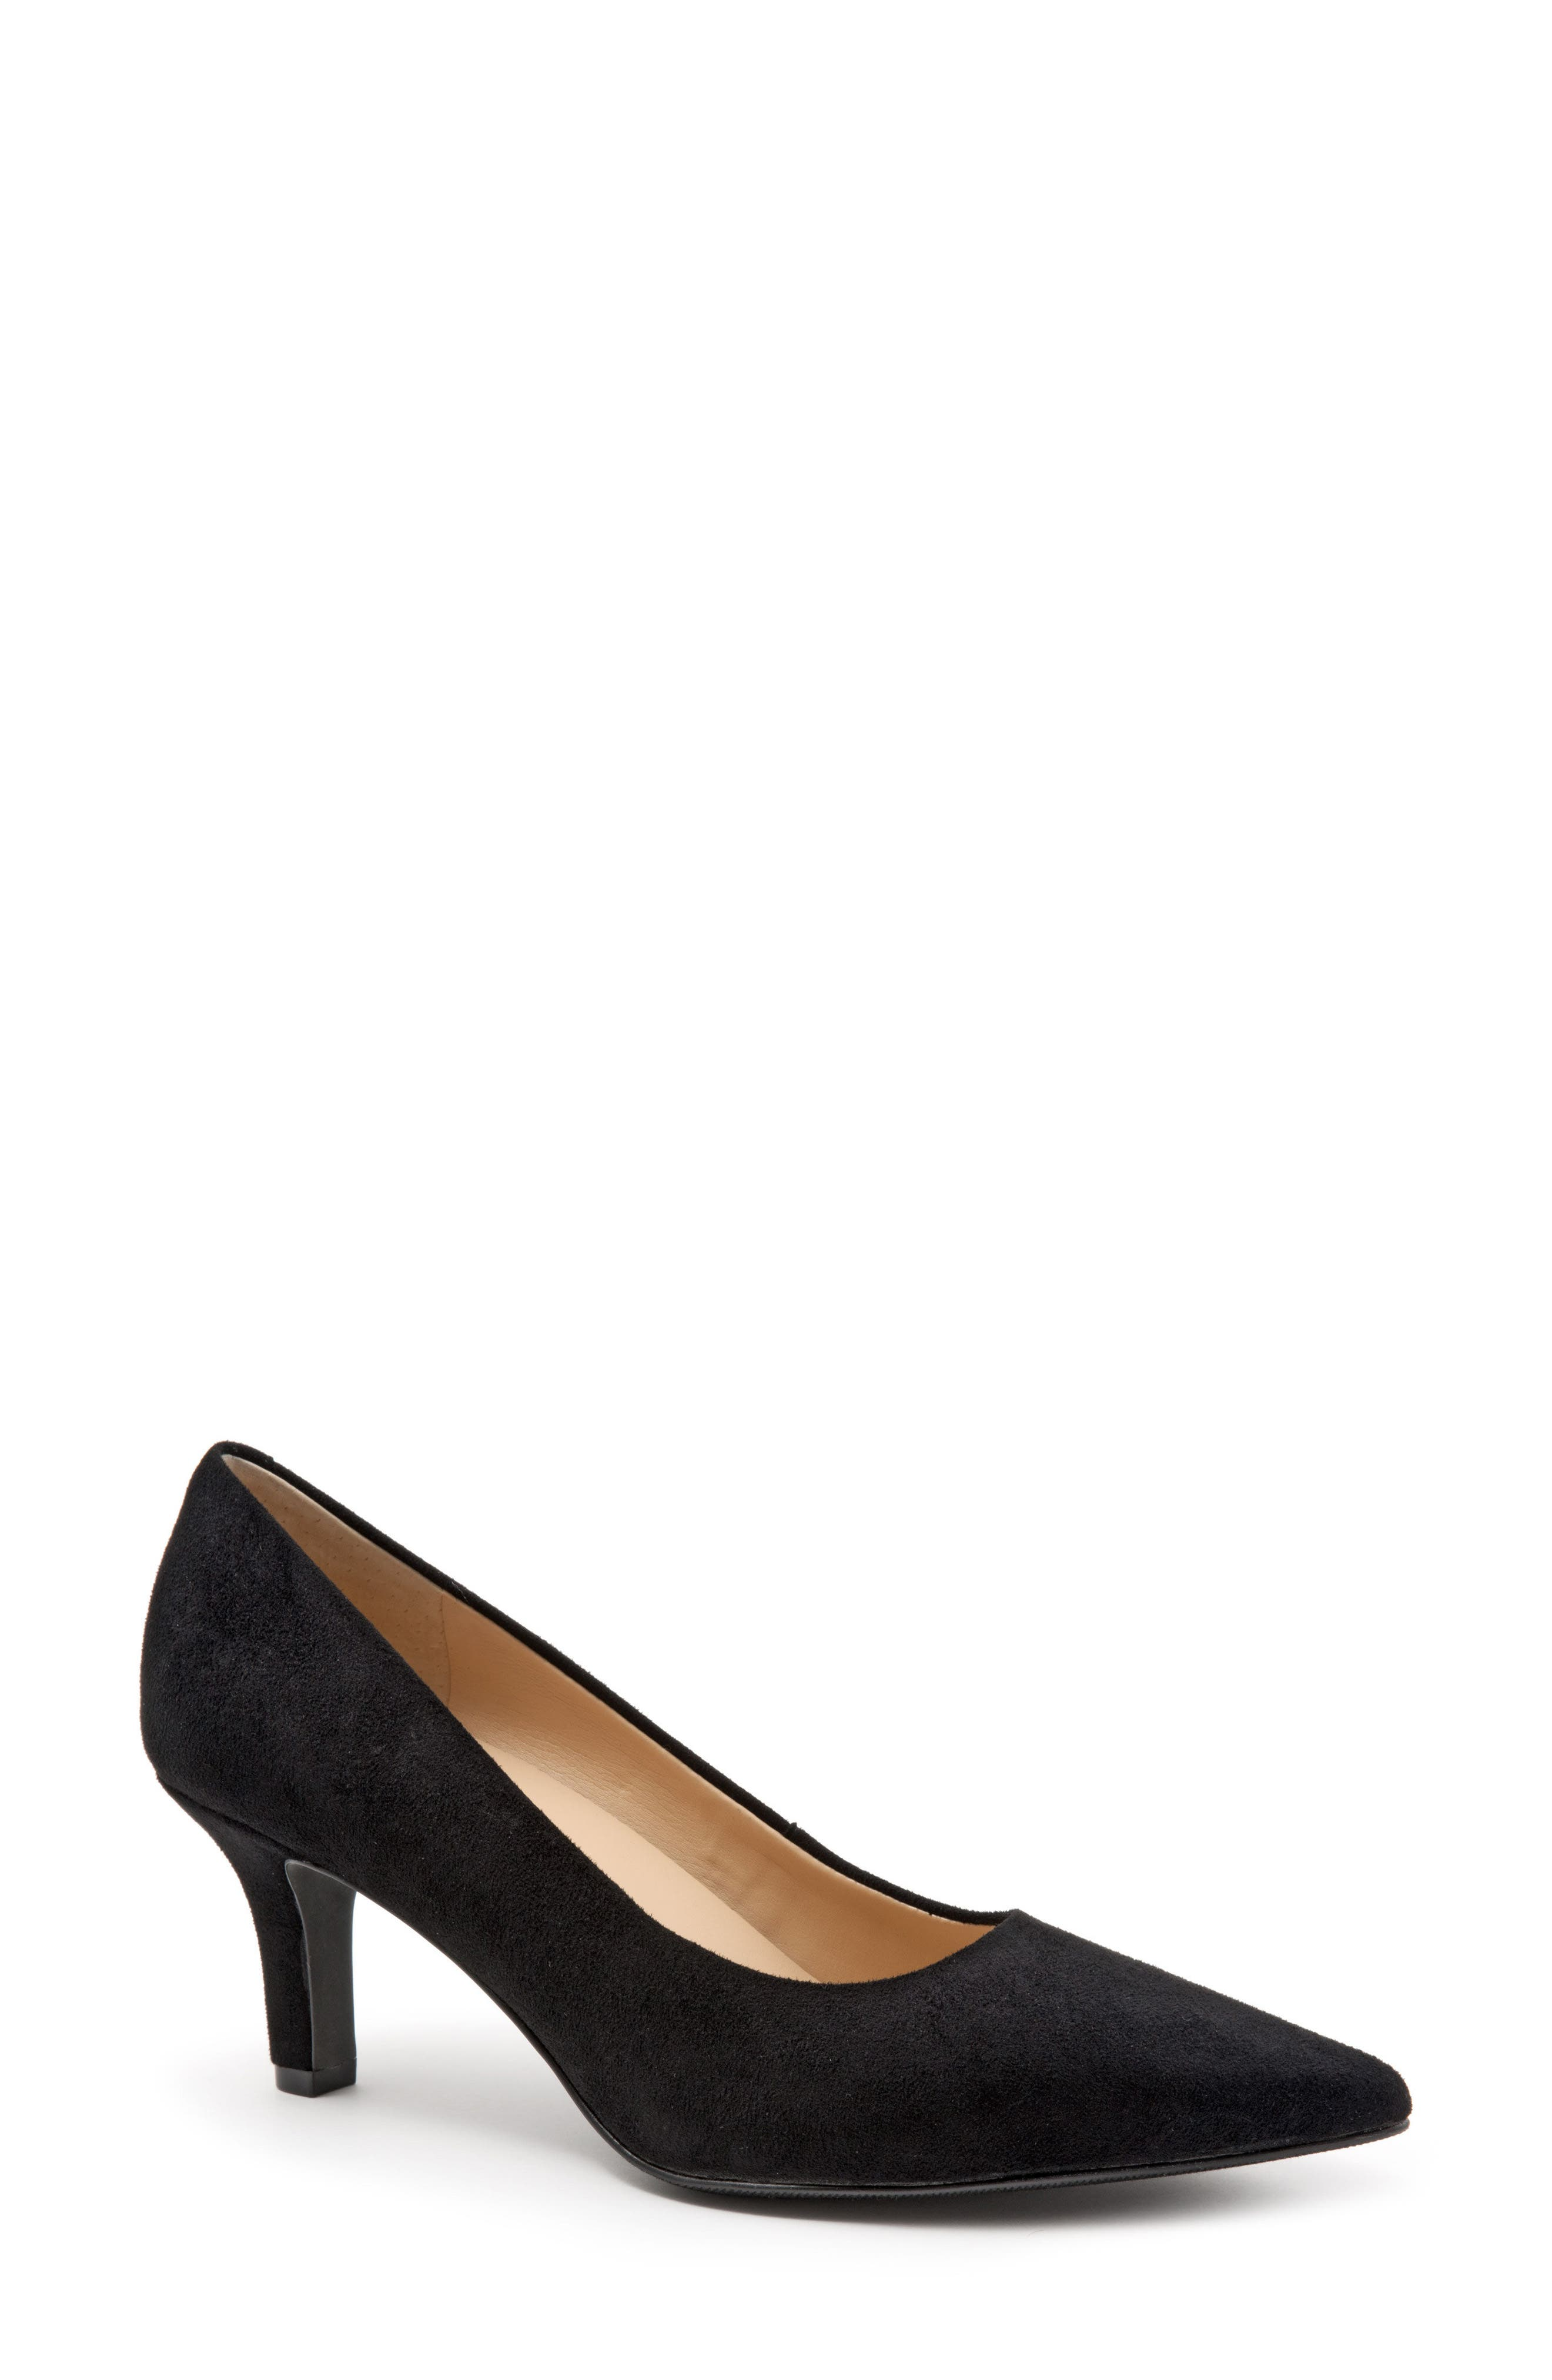 Noelle Pointy Toe Pump,                         Main,                         color,